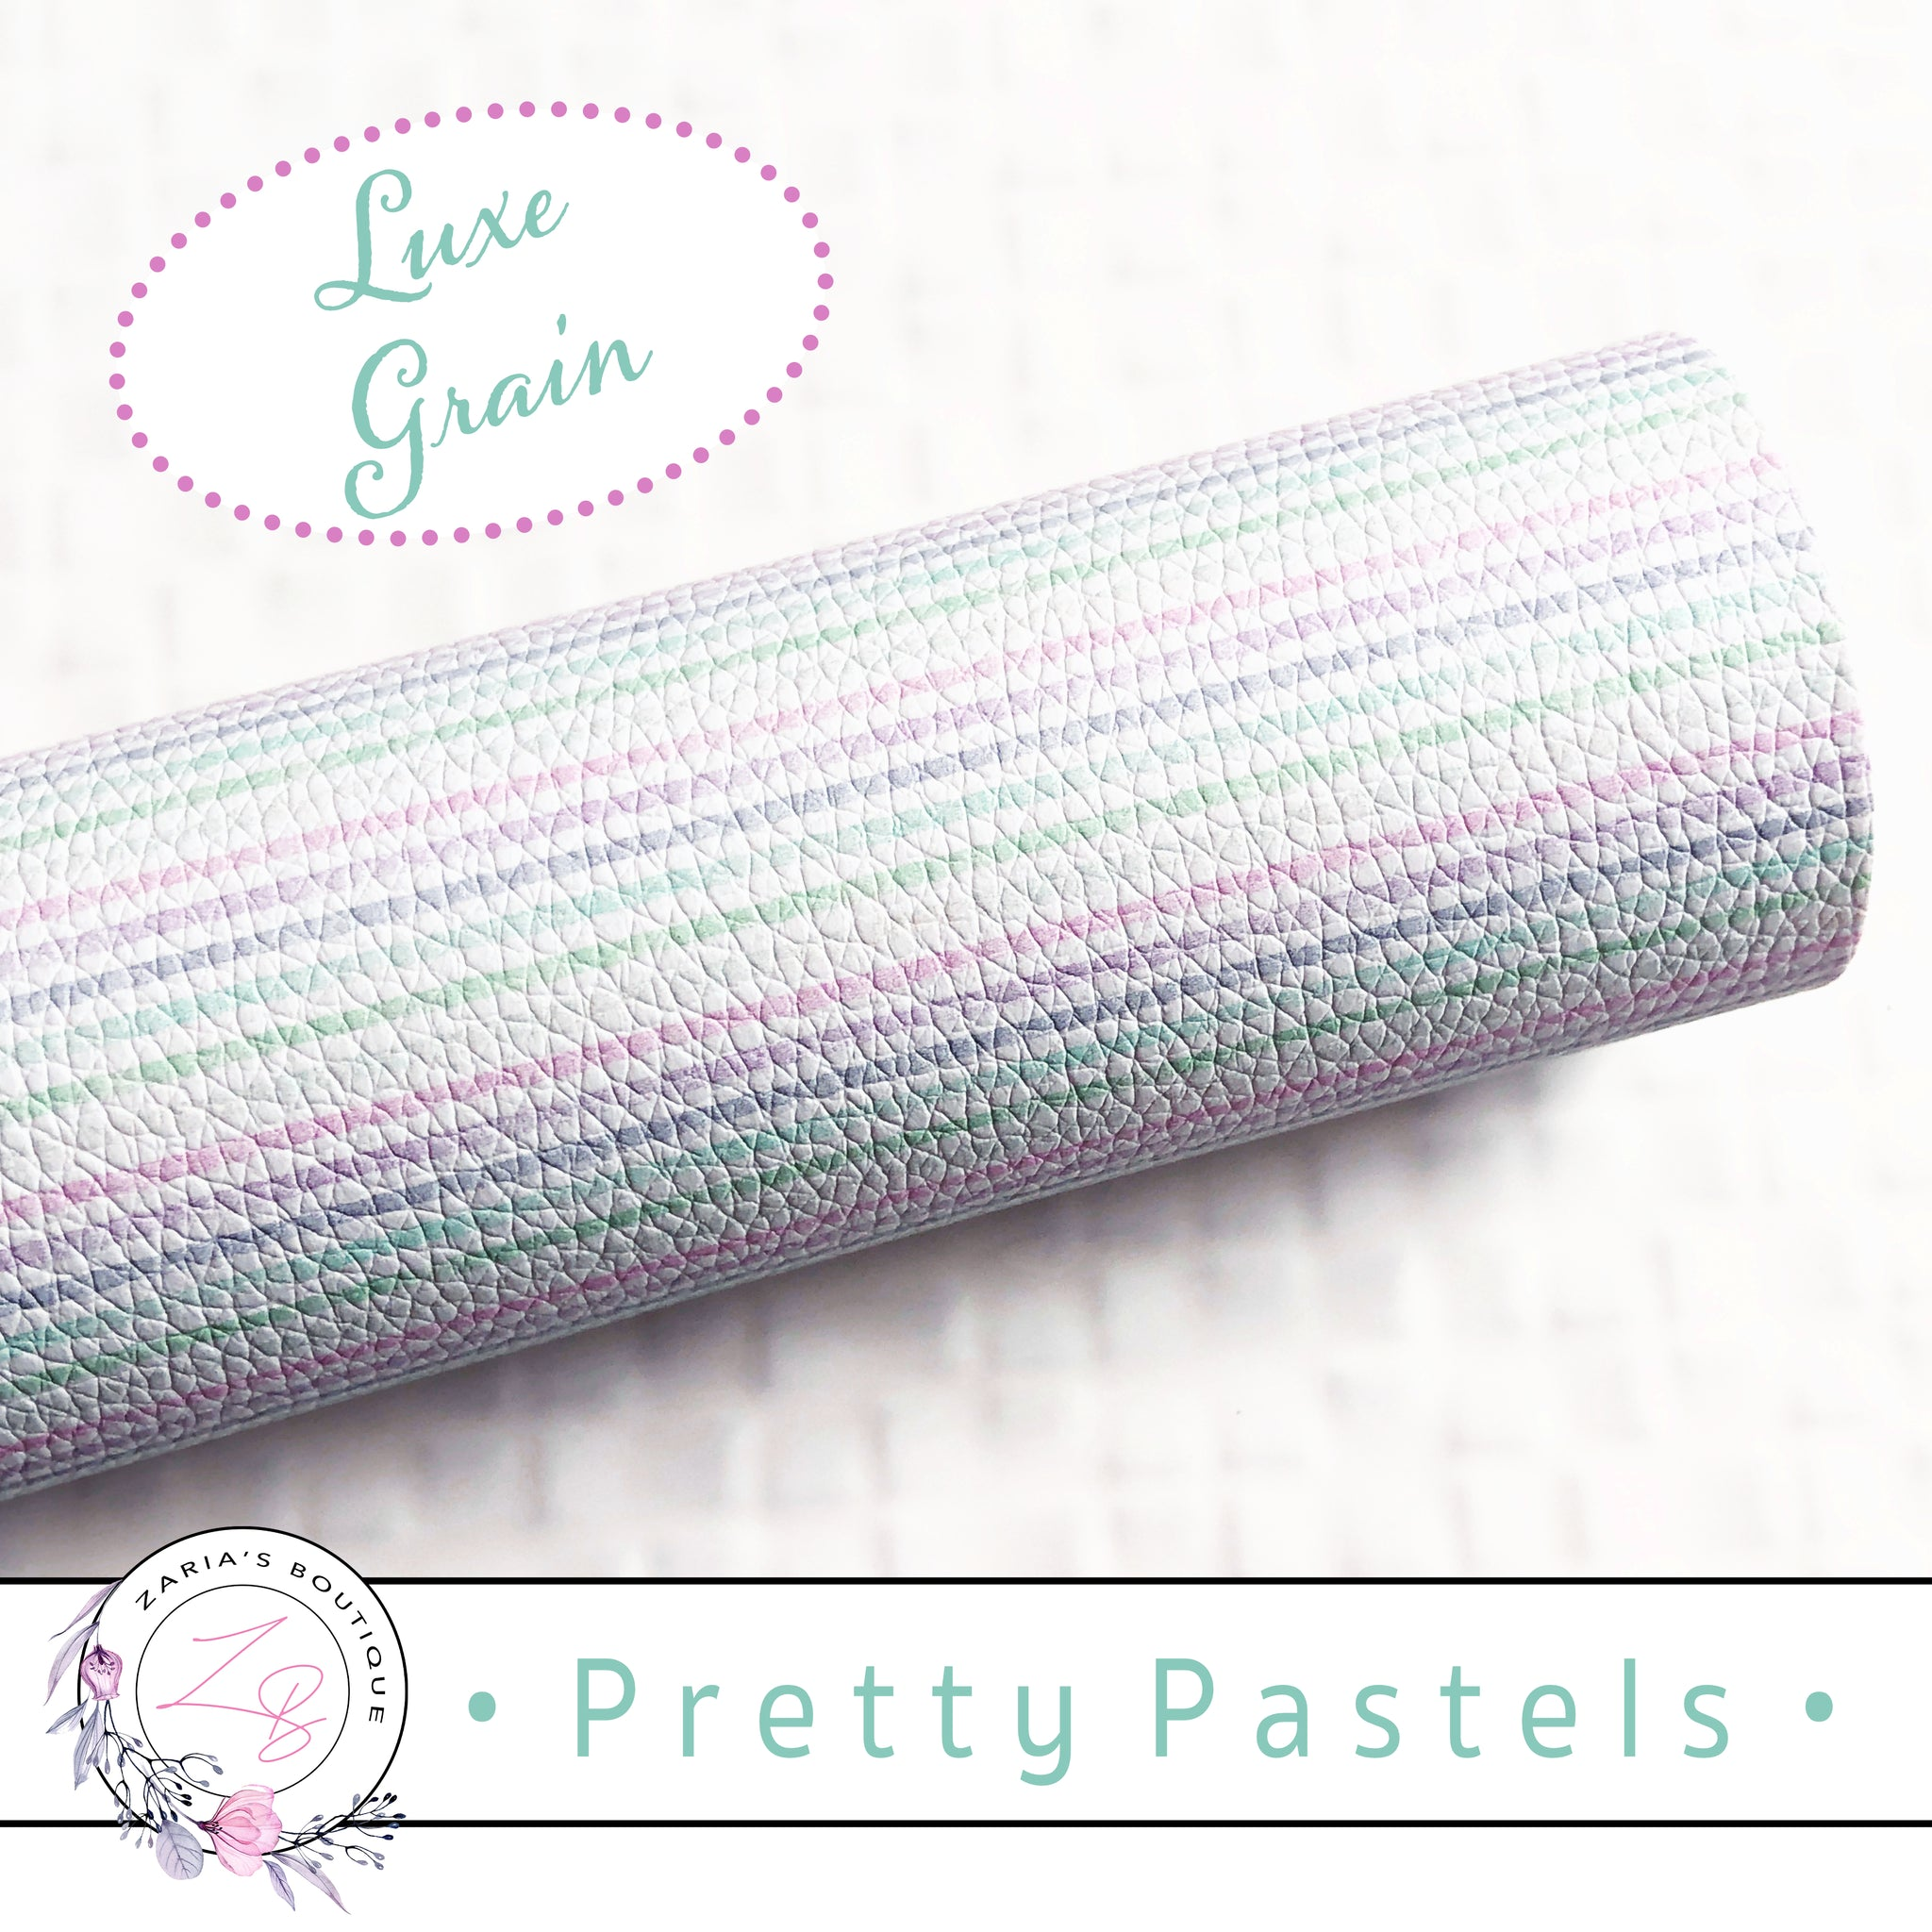 ⋅ Pretty Pastels ⋅ Pink Green Lavender Stripes ⋅ Custom Luxe Grain Vegan Faux Leather